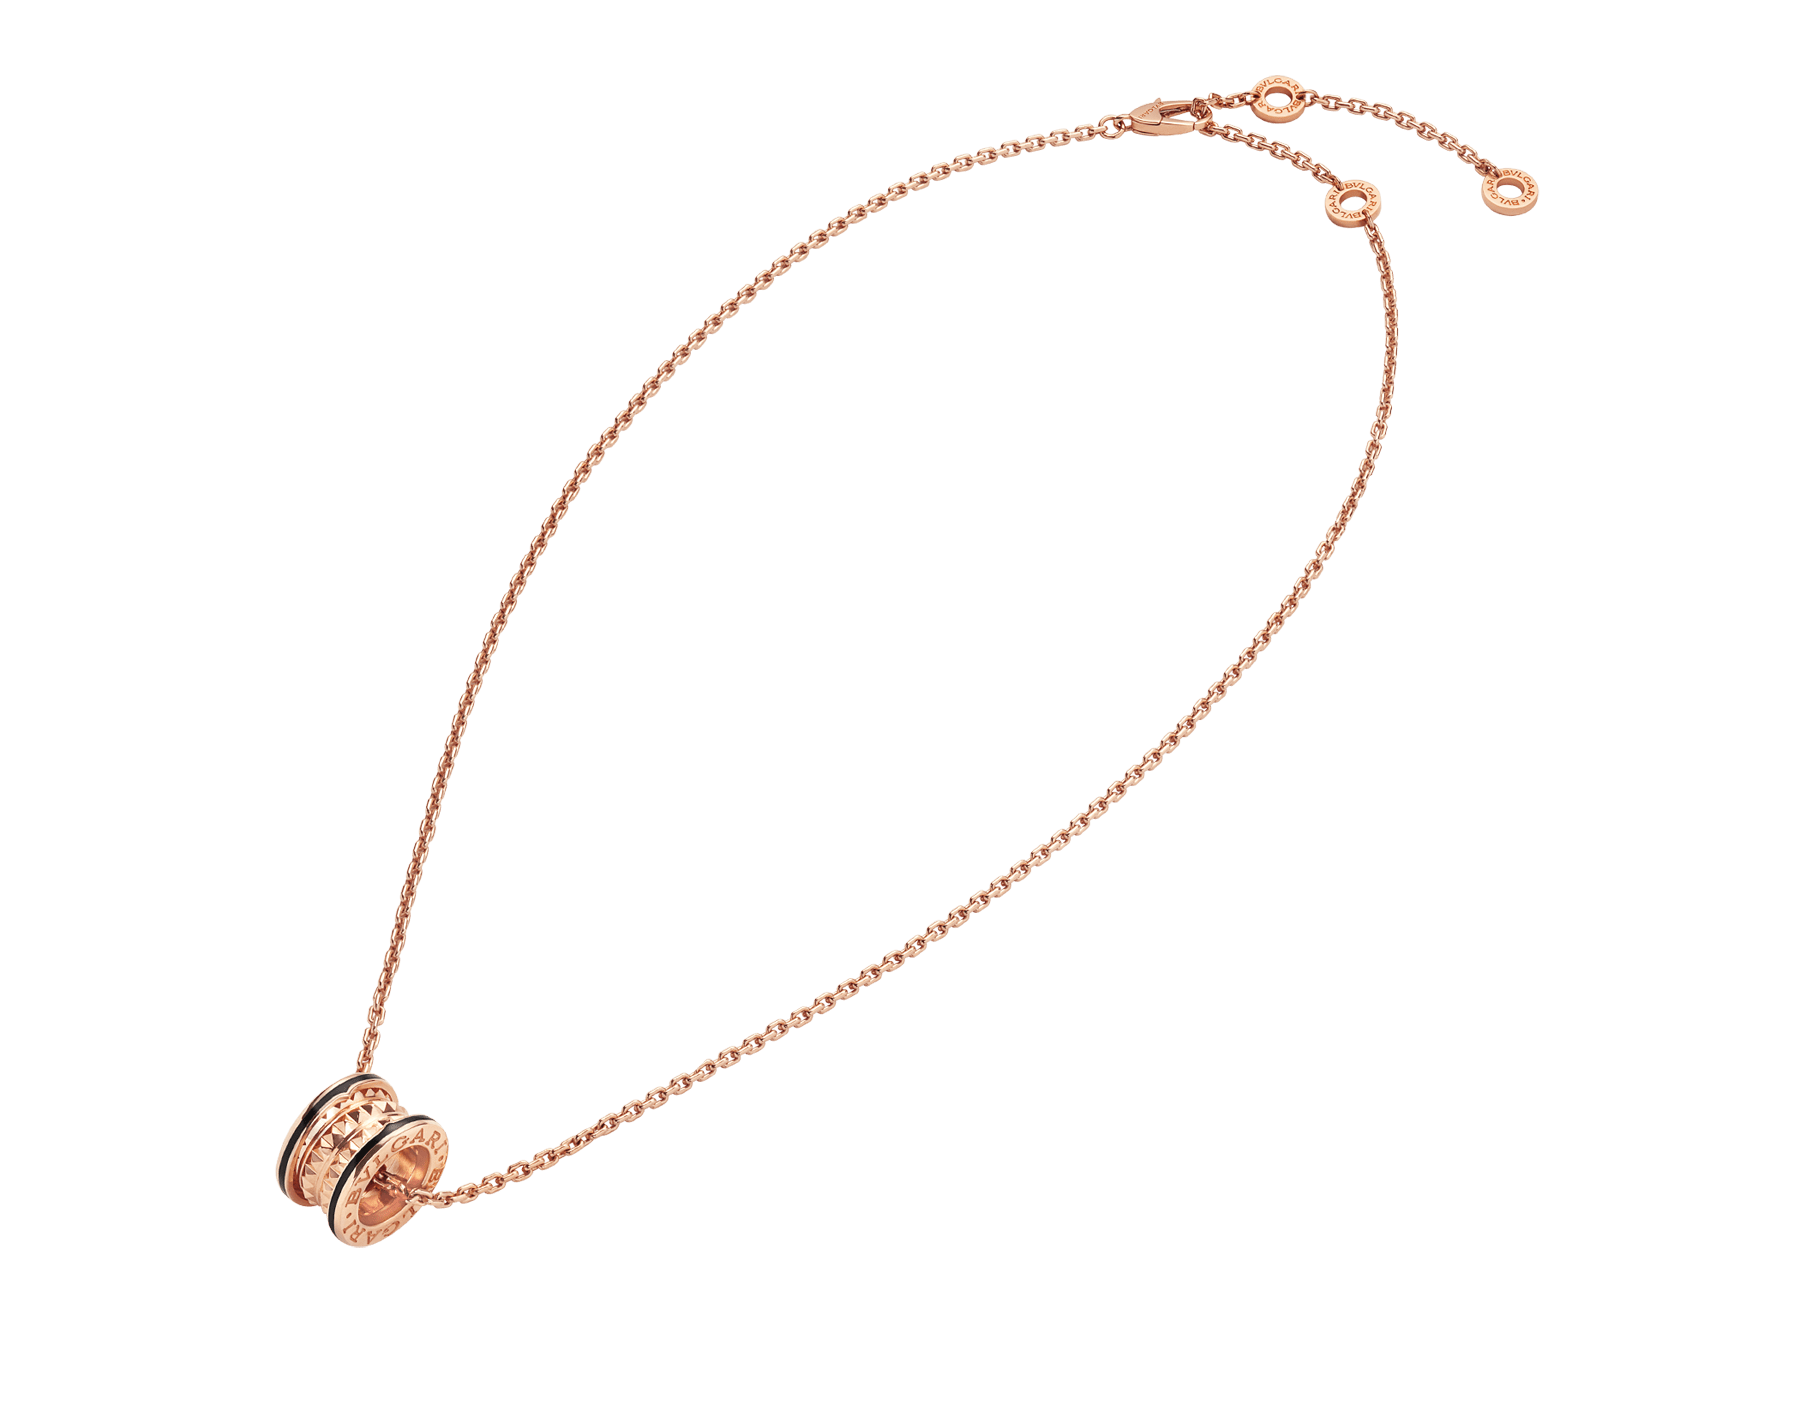 B.zero1 Rock necklace with 18 kt rose gold pendant with studded spiral, black ceramic inserts on the edges and 18 kt rose gold chain 358054 image 2